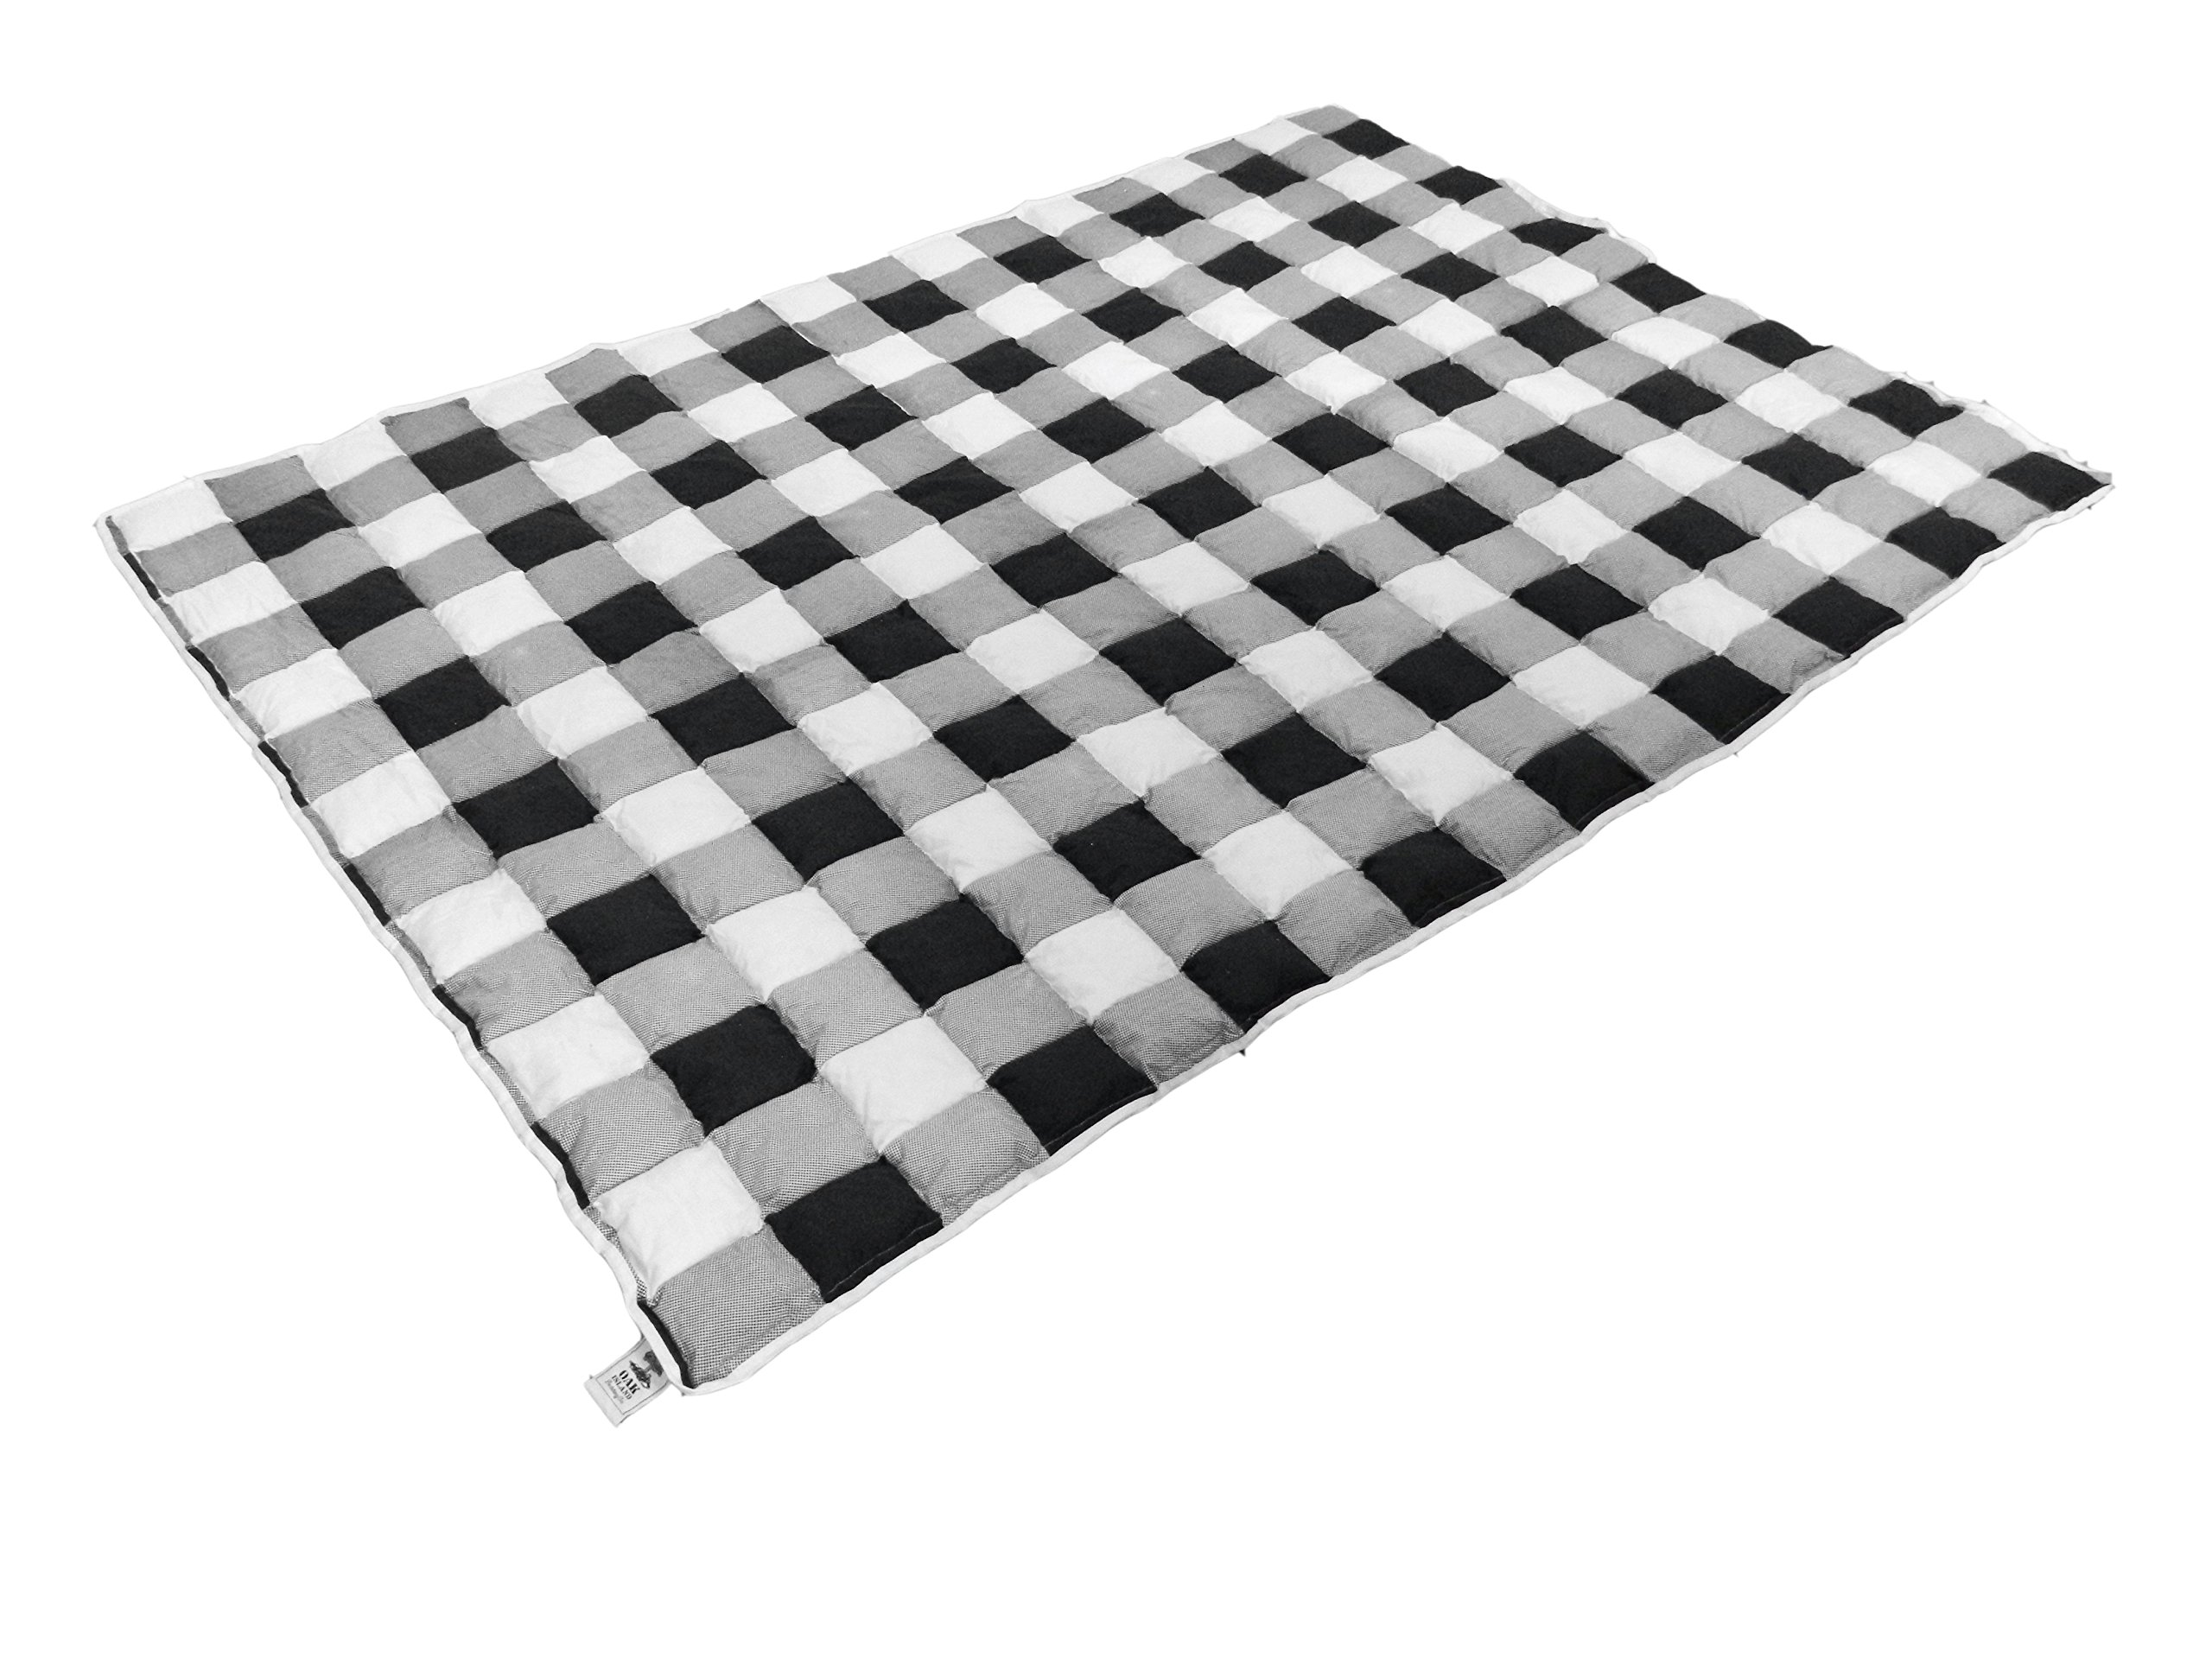 "Weighted Blanket for Women, Men, Adults, and Teenagers – Can Help Autism Spectrum Disorder, Insomnia, and Anxiety– Large and Heavy – 60"" x 84"" – 16 lbs of Pressure - Buffalo Plaid Design"